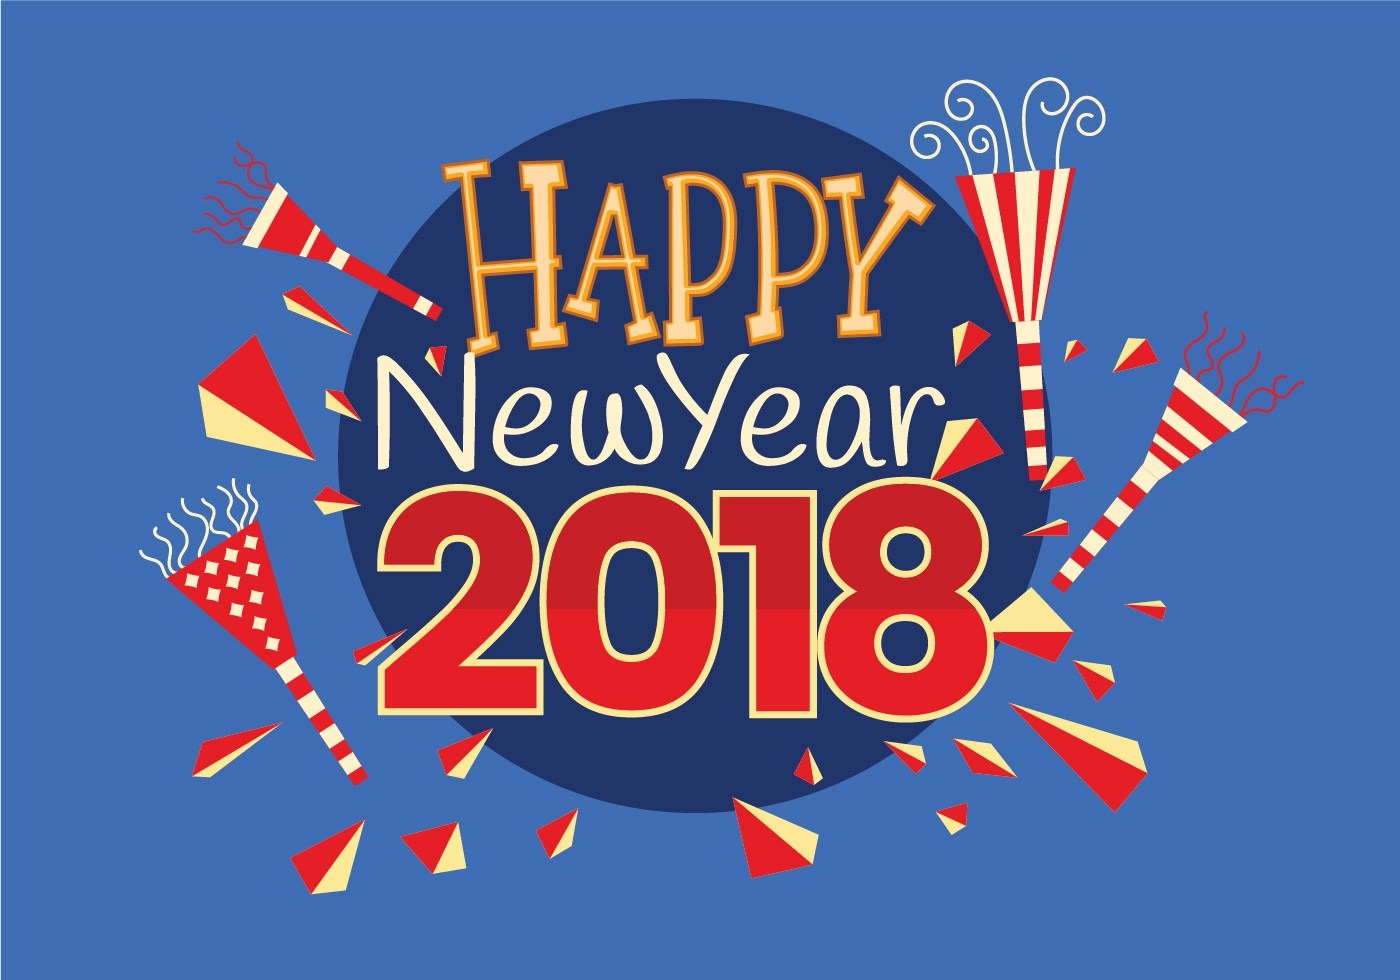 Image of: Tumblr Happy New 2018 Year Greeting Card Vector Download Free Blackdianet Happy New Year 2018 Travel Quotes Quotes On New Year 2018 Merry